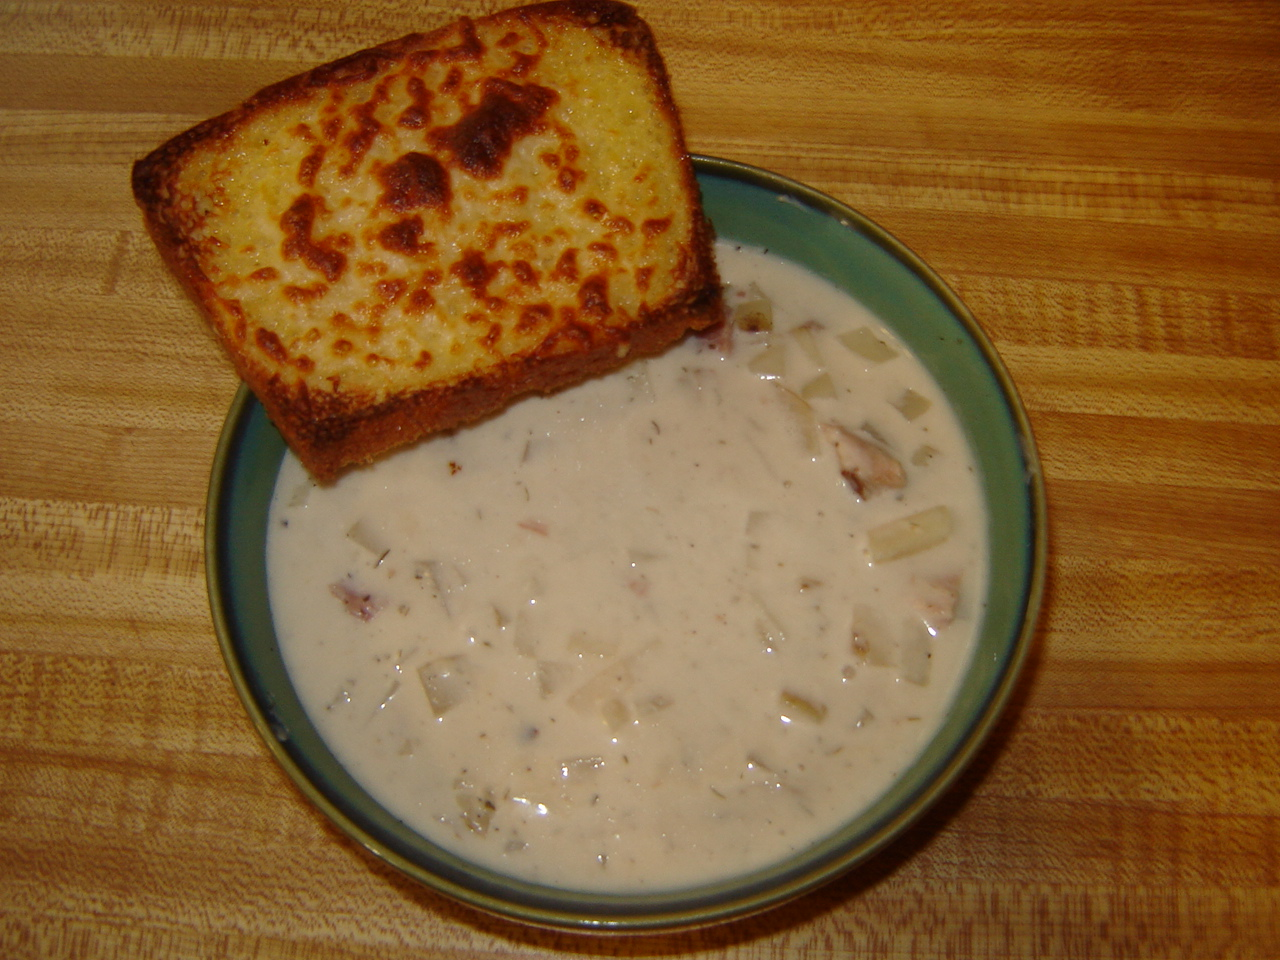 ... From A Middle Class Kitchen: Slow Cooker Cream Cheese Potato Soup